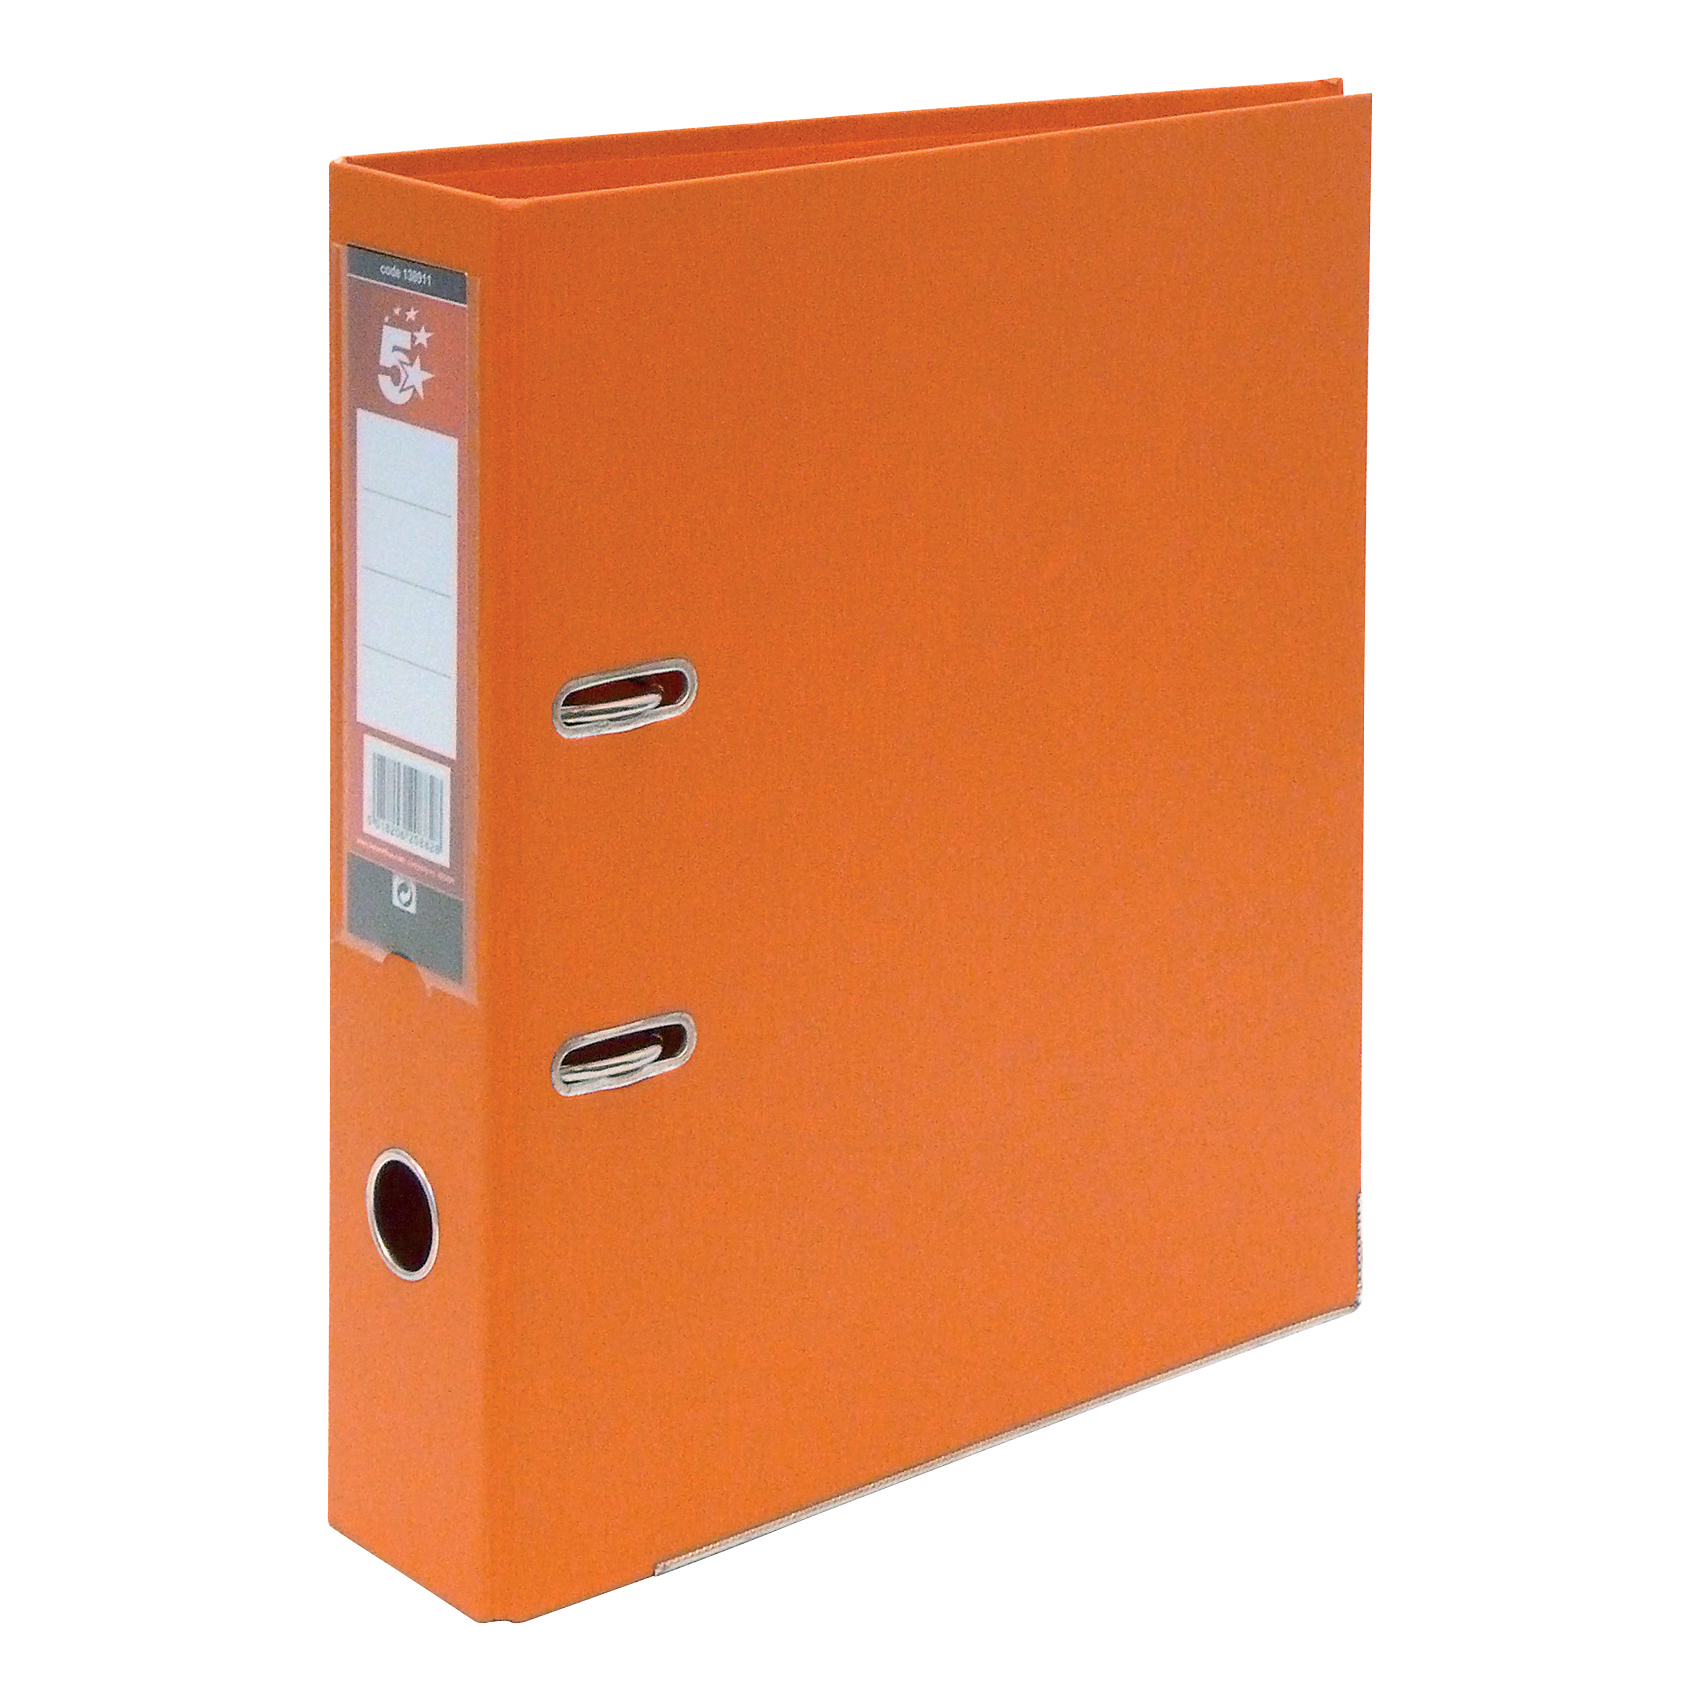 Lever Arch Files 5 Star Office Lever Arch File Polypropylene Capacity 70mm A4 Orange Pack 10